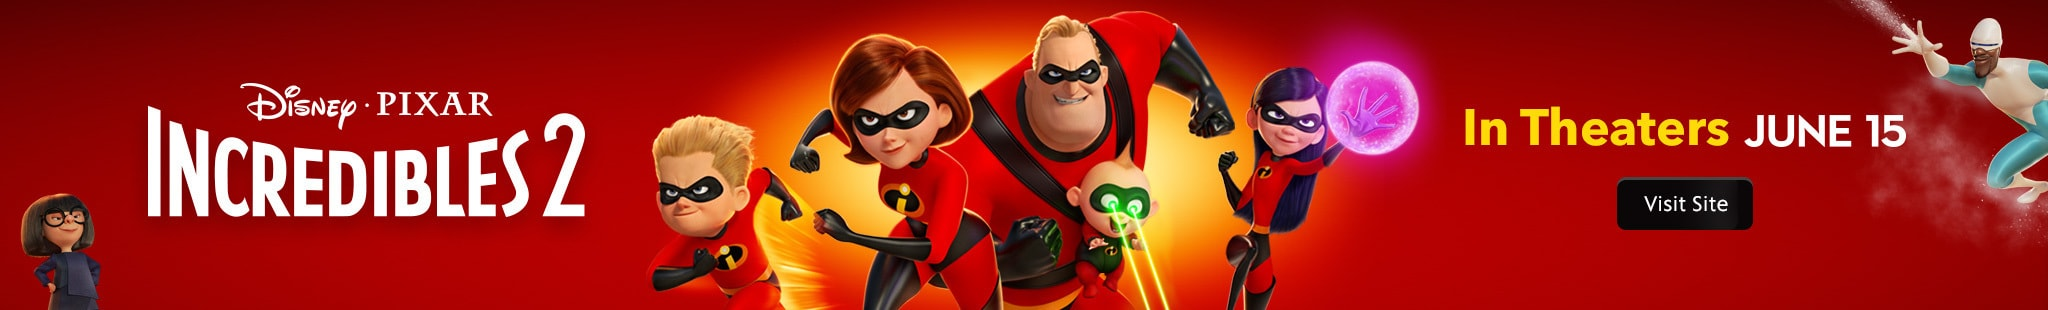 Disney Pixar Incredibles 2 In theatres June 15 Visit Site